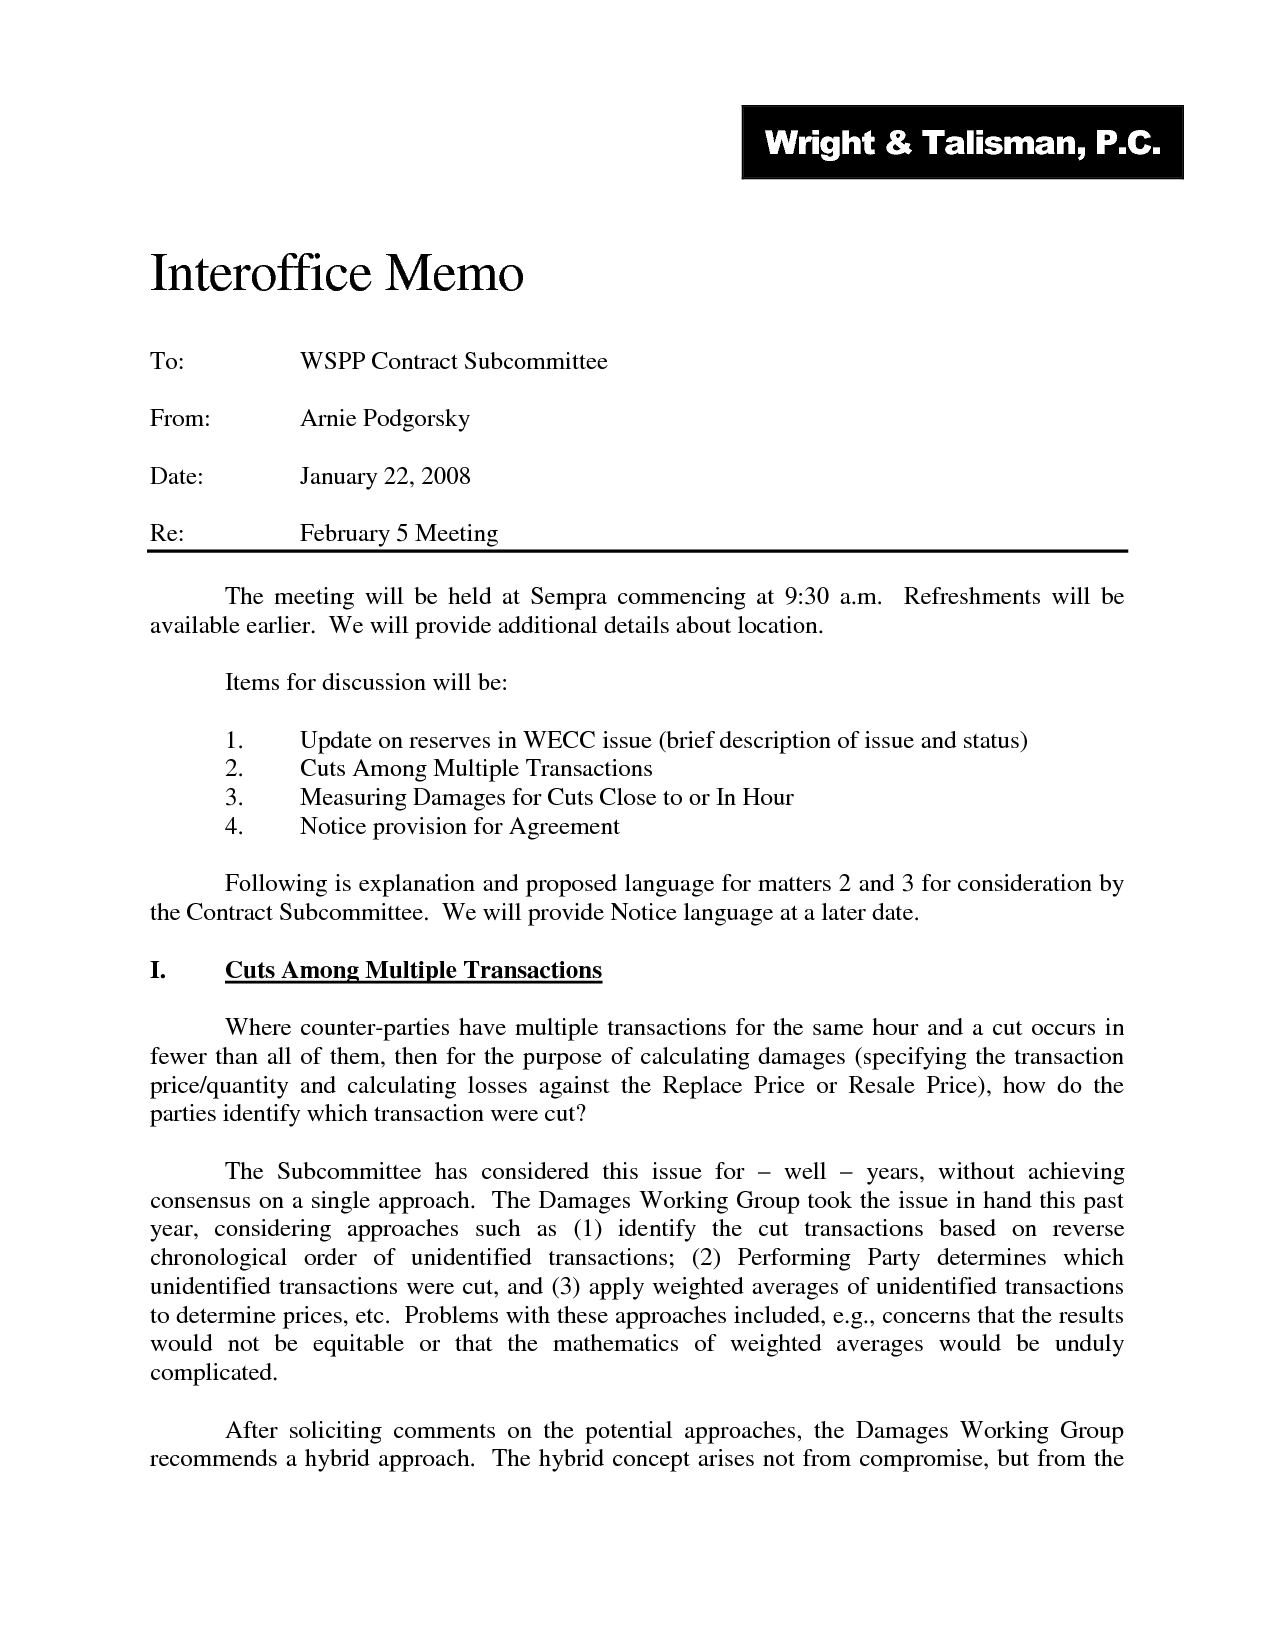 Internal Office Memorandum - Asafon.ggec.co in Legal Office Memo Format 22945